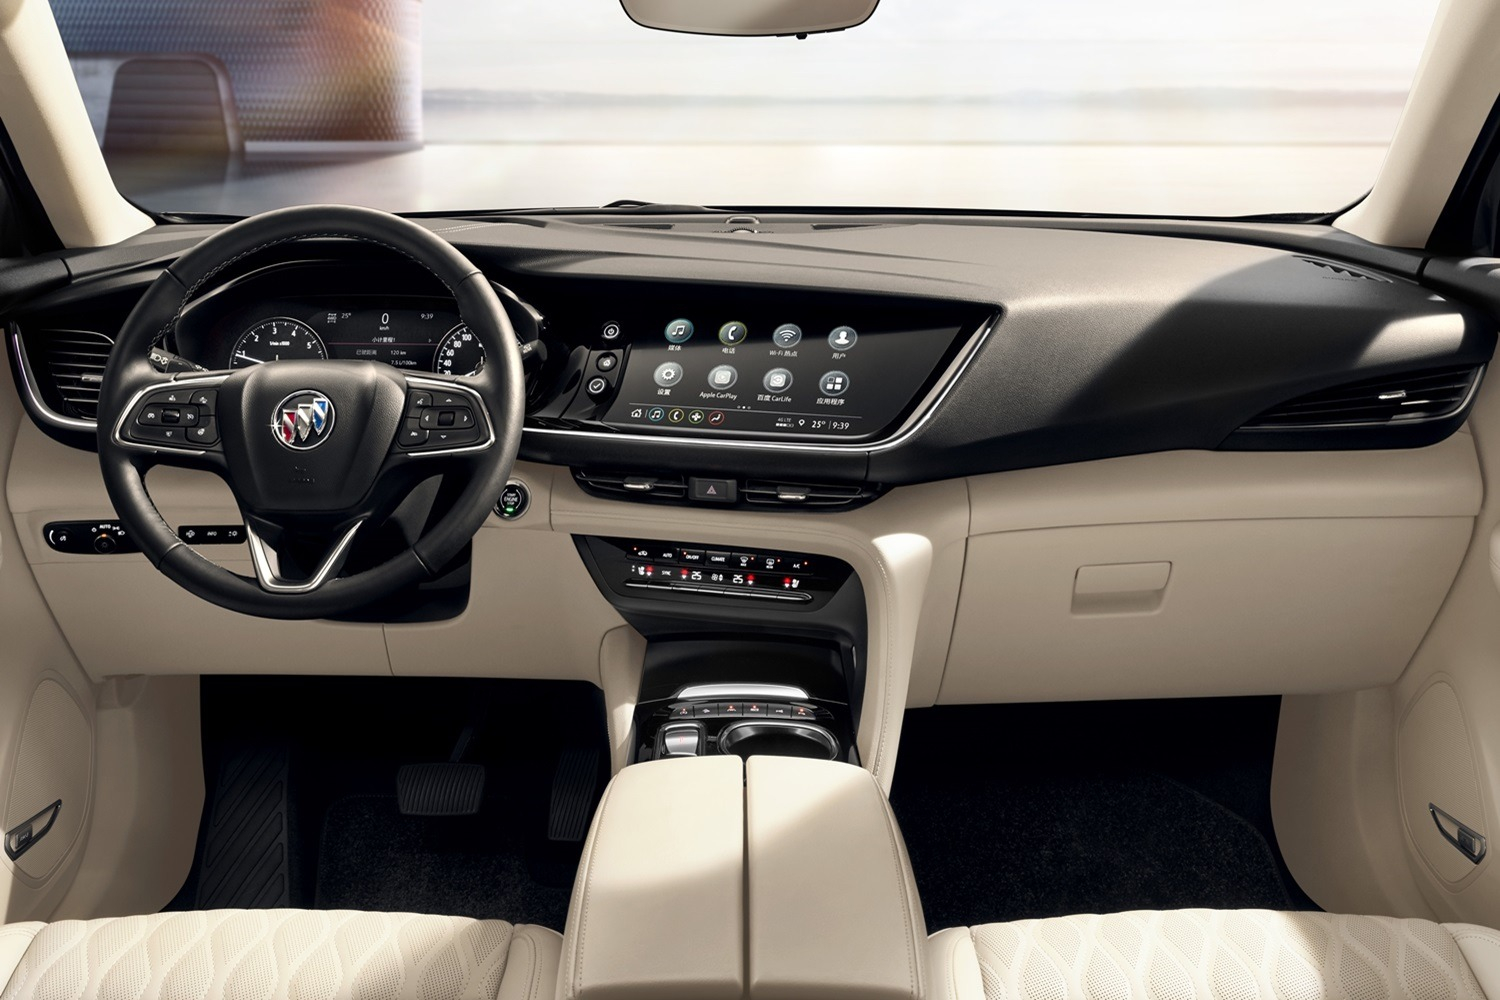 2021 Buick Envision Interior Revealed In Brand New Photos New 2021 Buick Envision Consumer Reports, Configurations, Deals